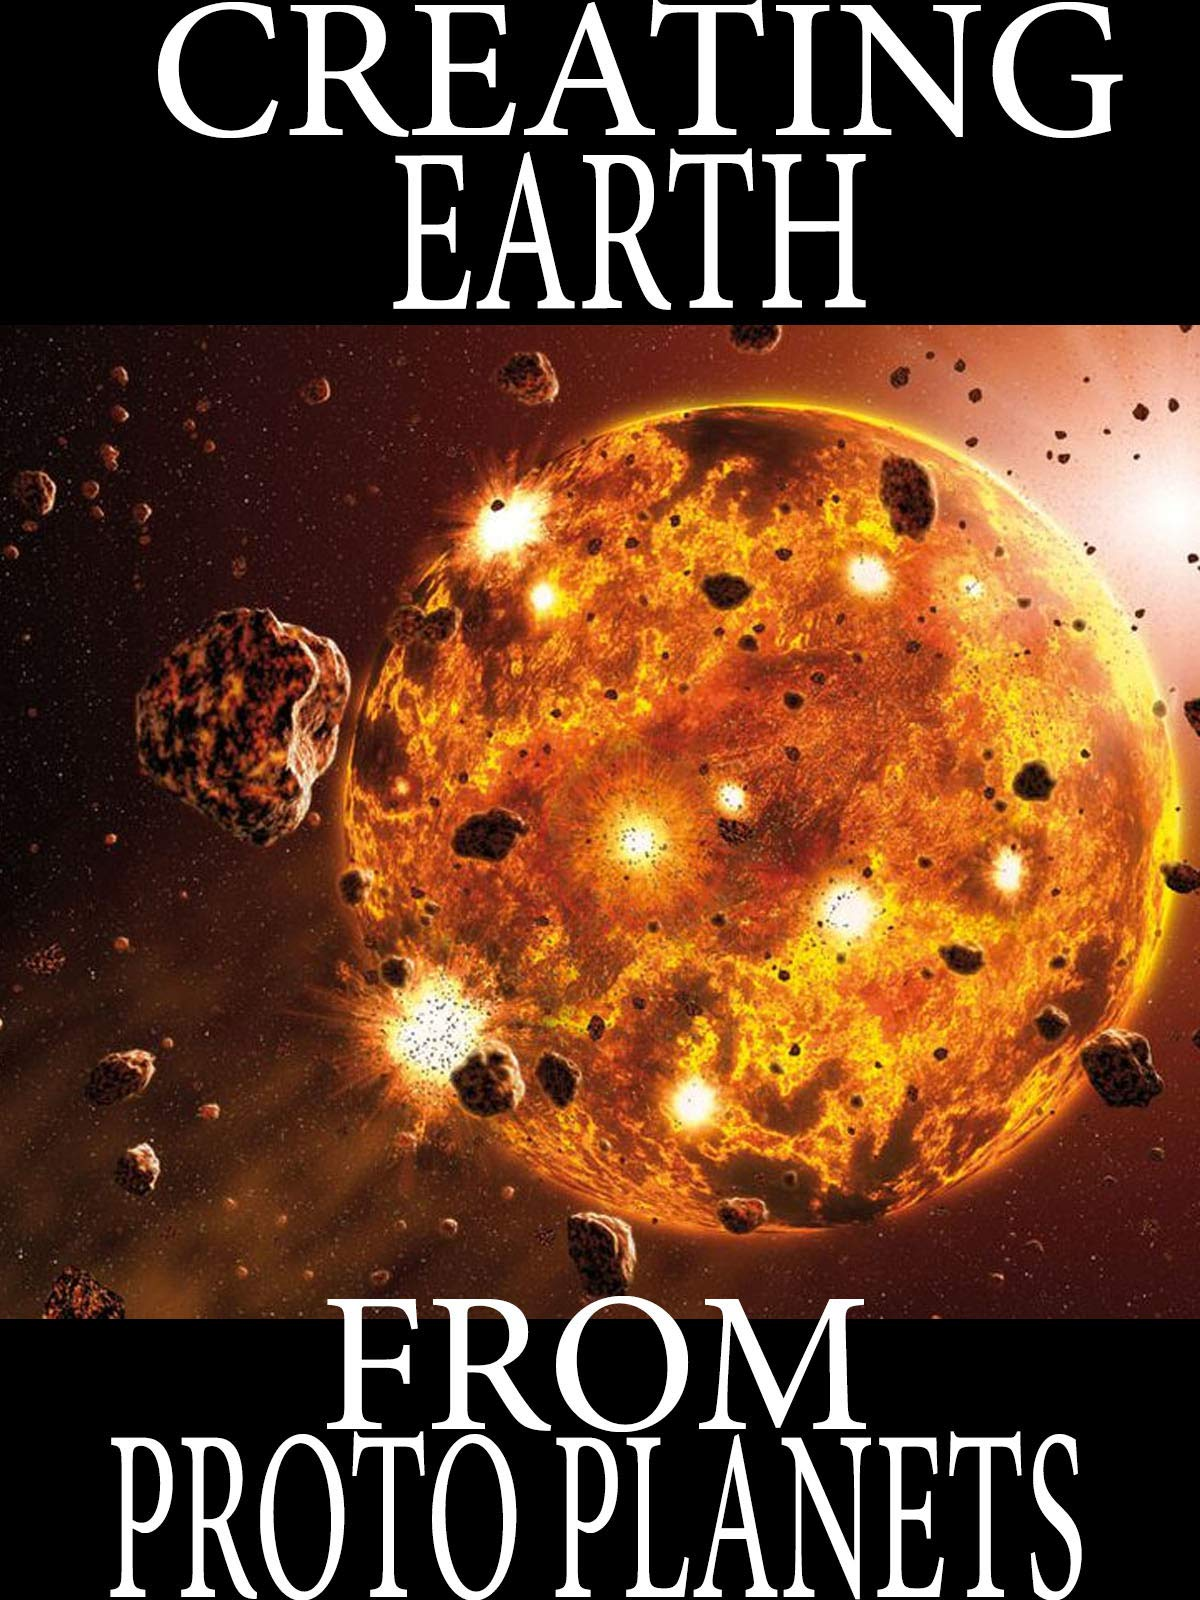 Creation of Earth From Protoplanets